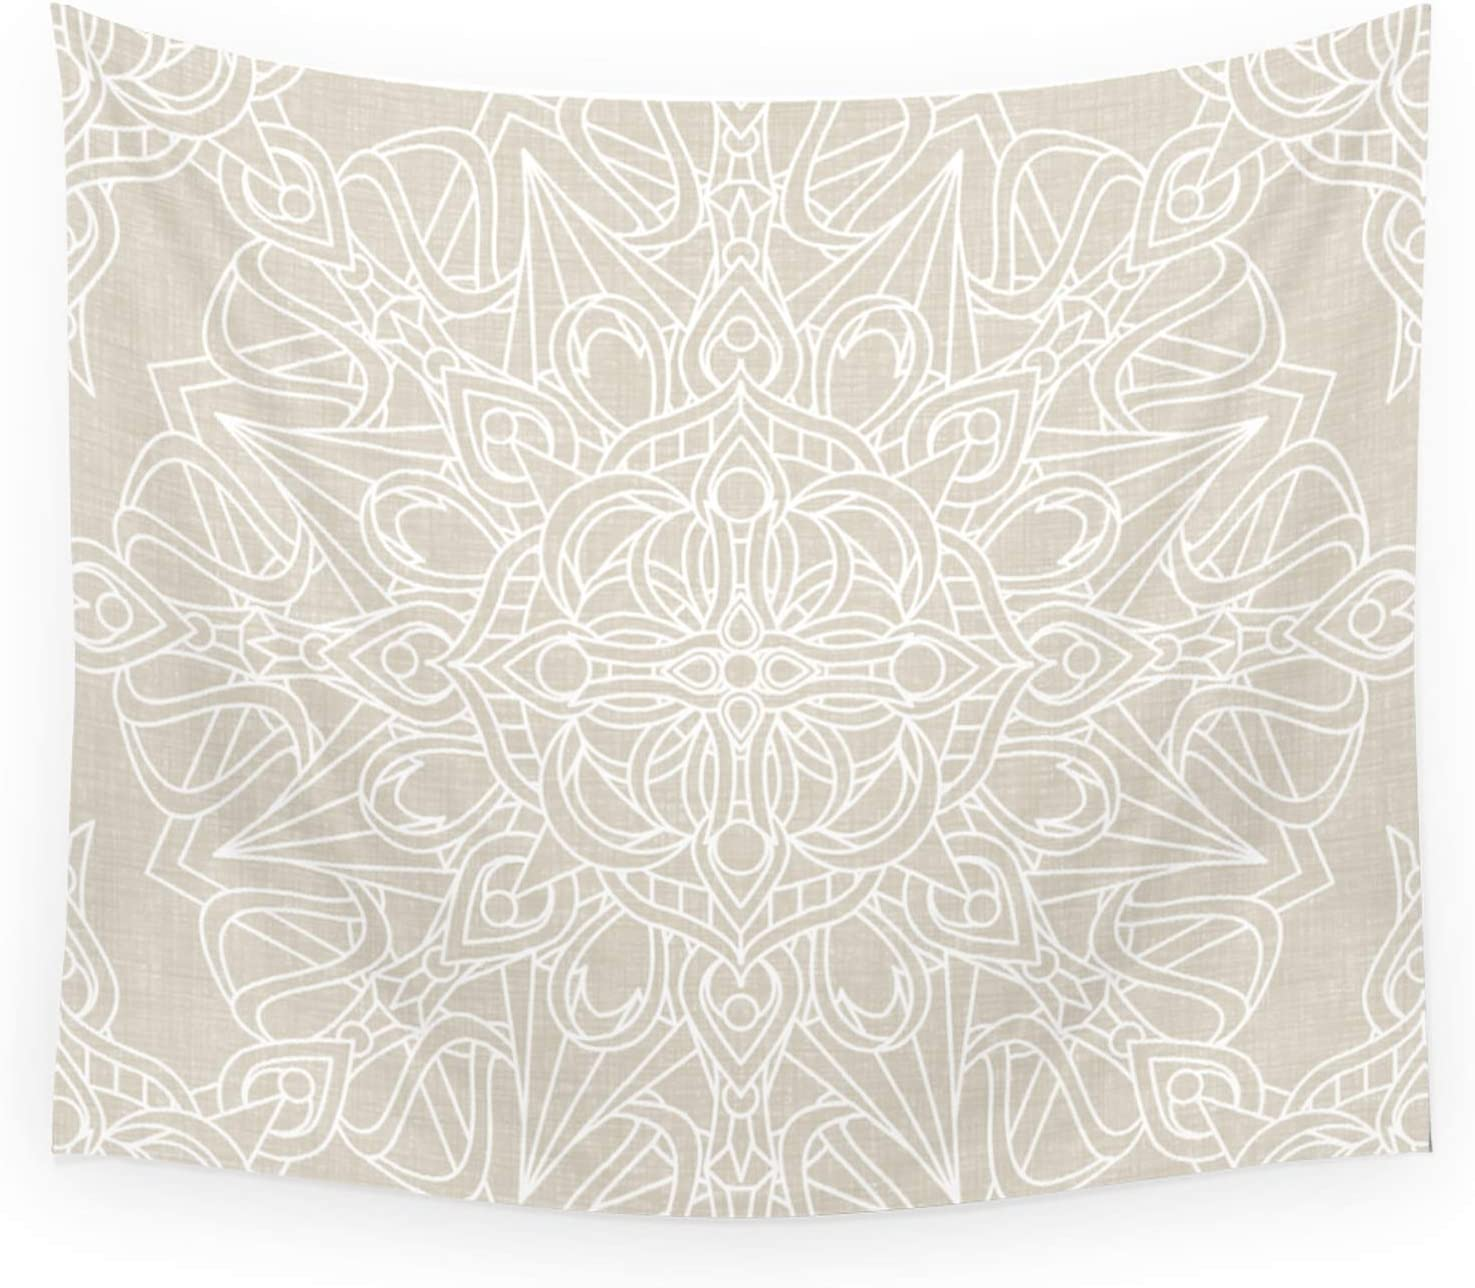 Society6 White Mail order cheap Lace Mandala On Ivory Linen Finally popular brand by Background Antique